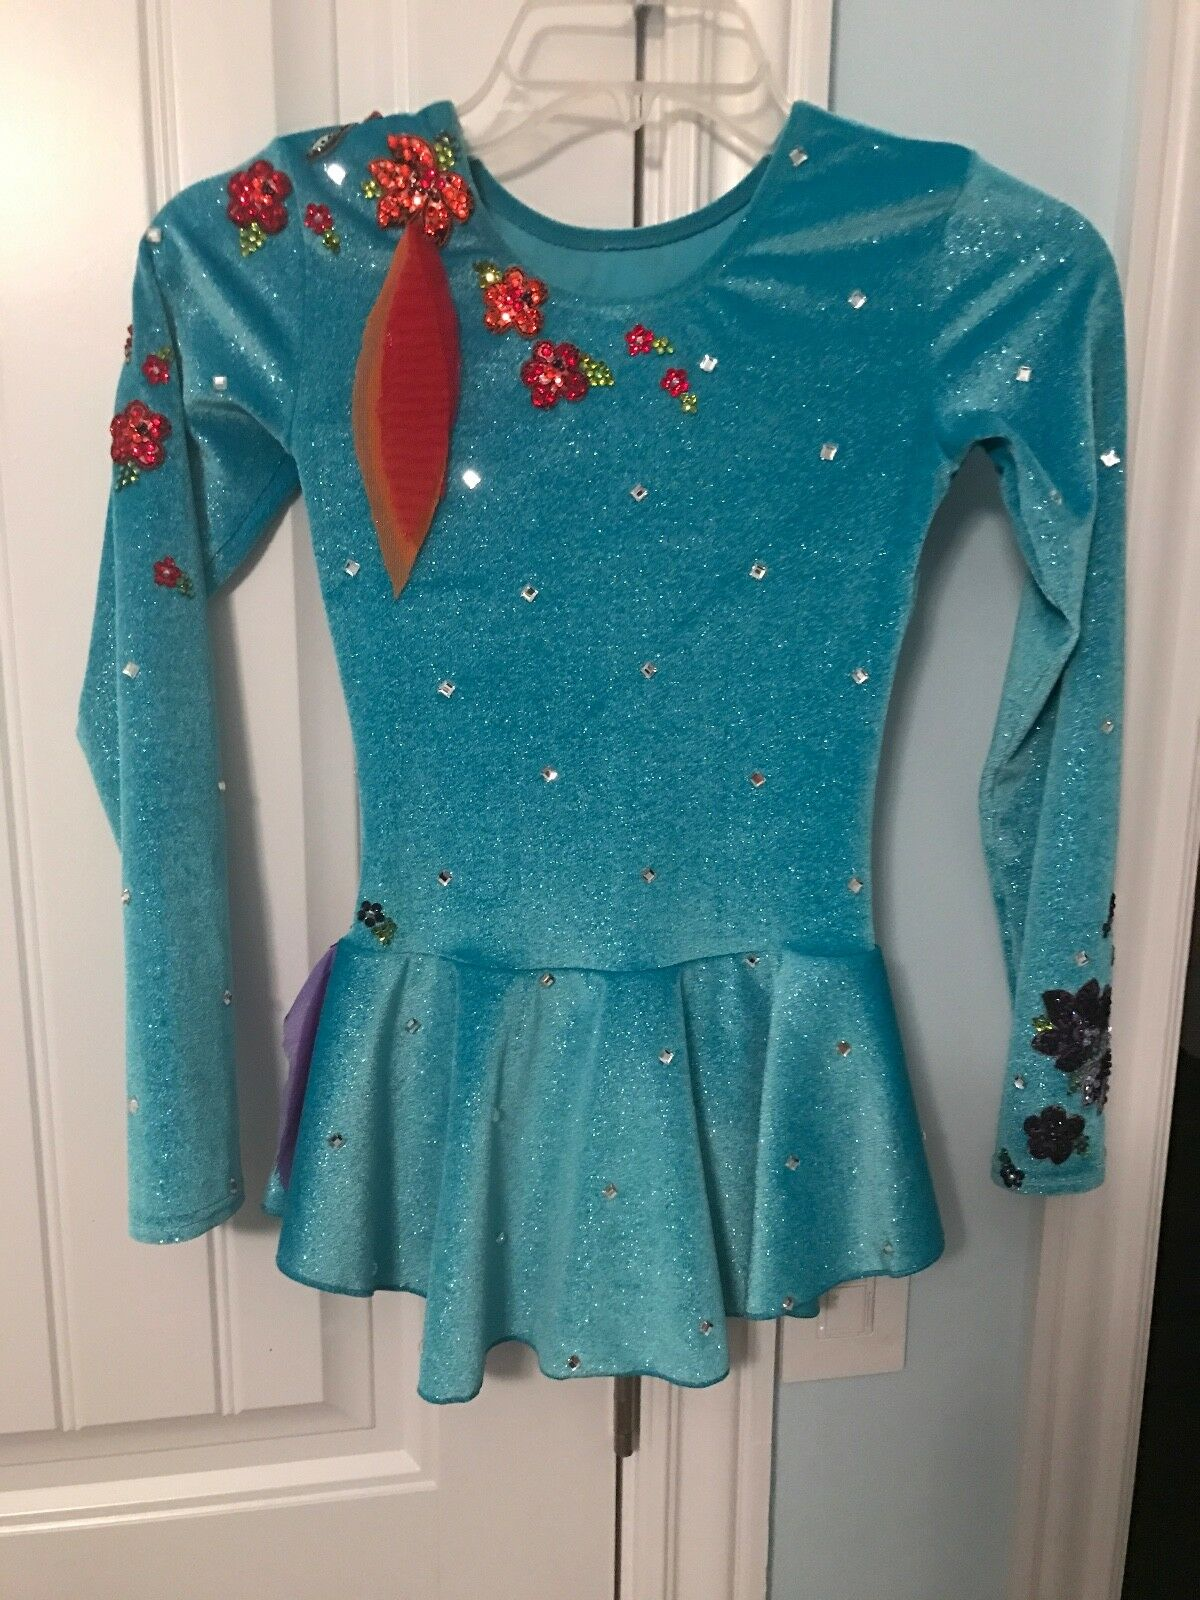 Girls size 8-10 skating dress ONE-OF-A-KIND HANDMADE embroidered blueish-tourquiz